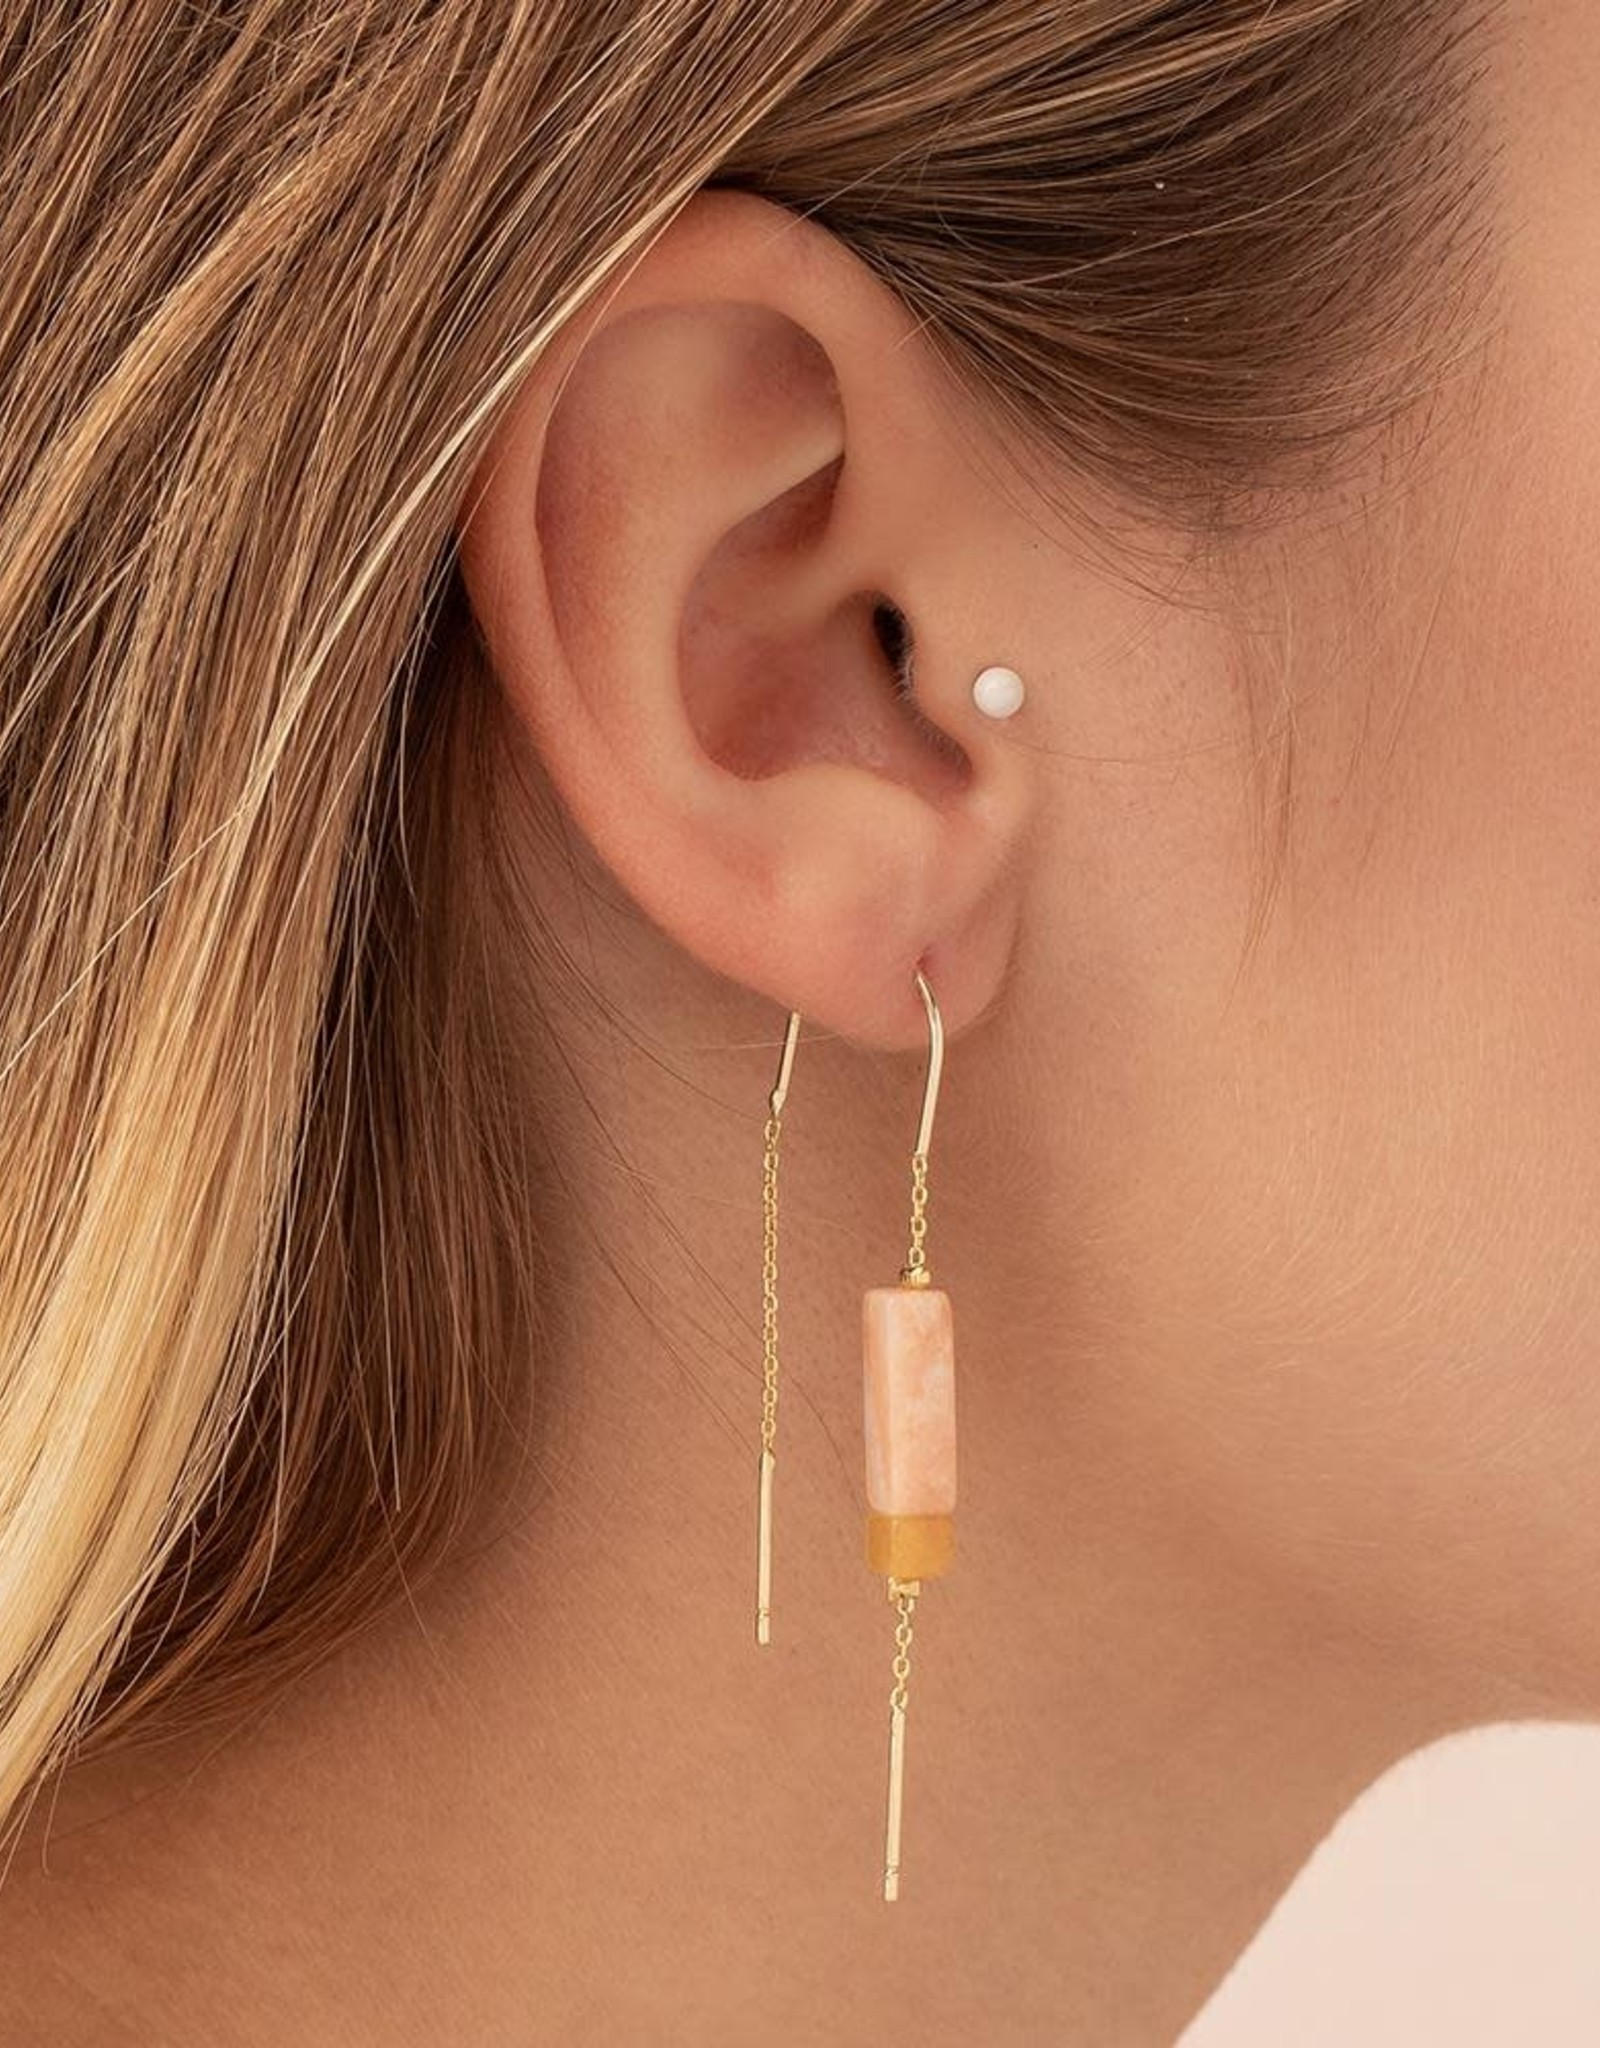 Scout Stone Thread Earrings - Amazonite/Amber